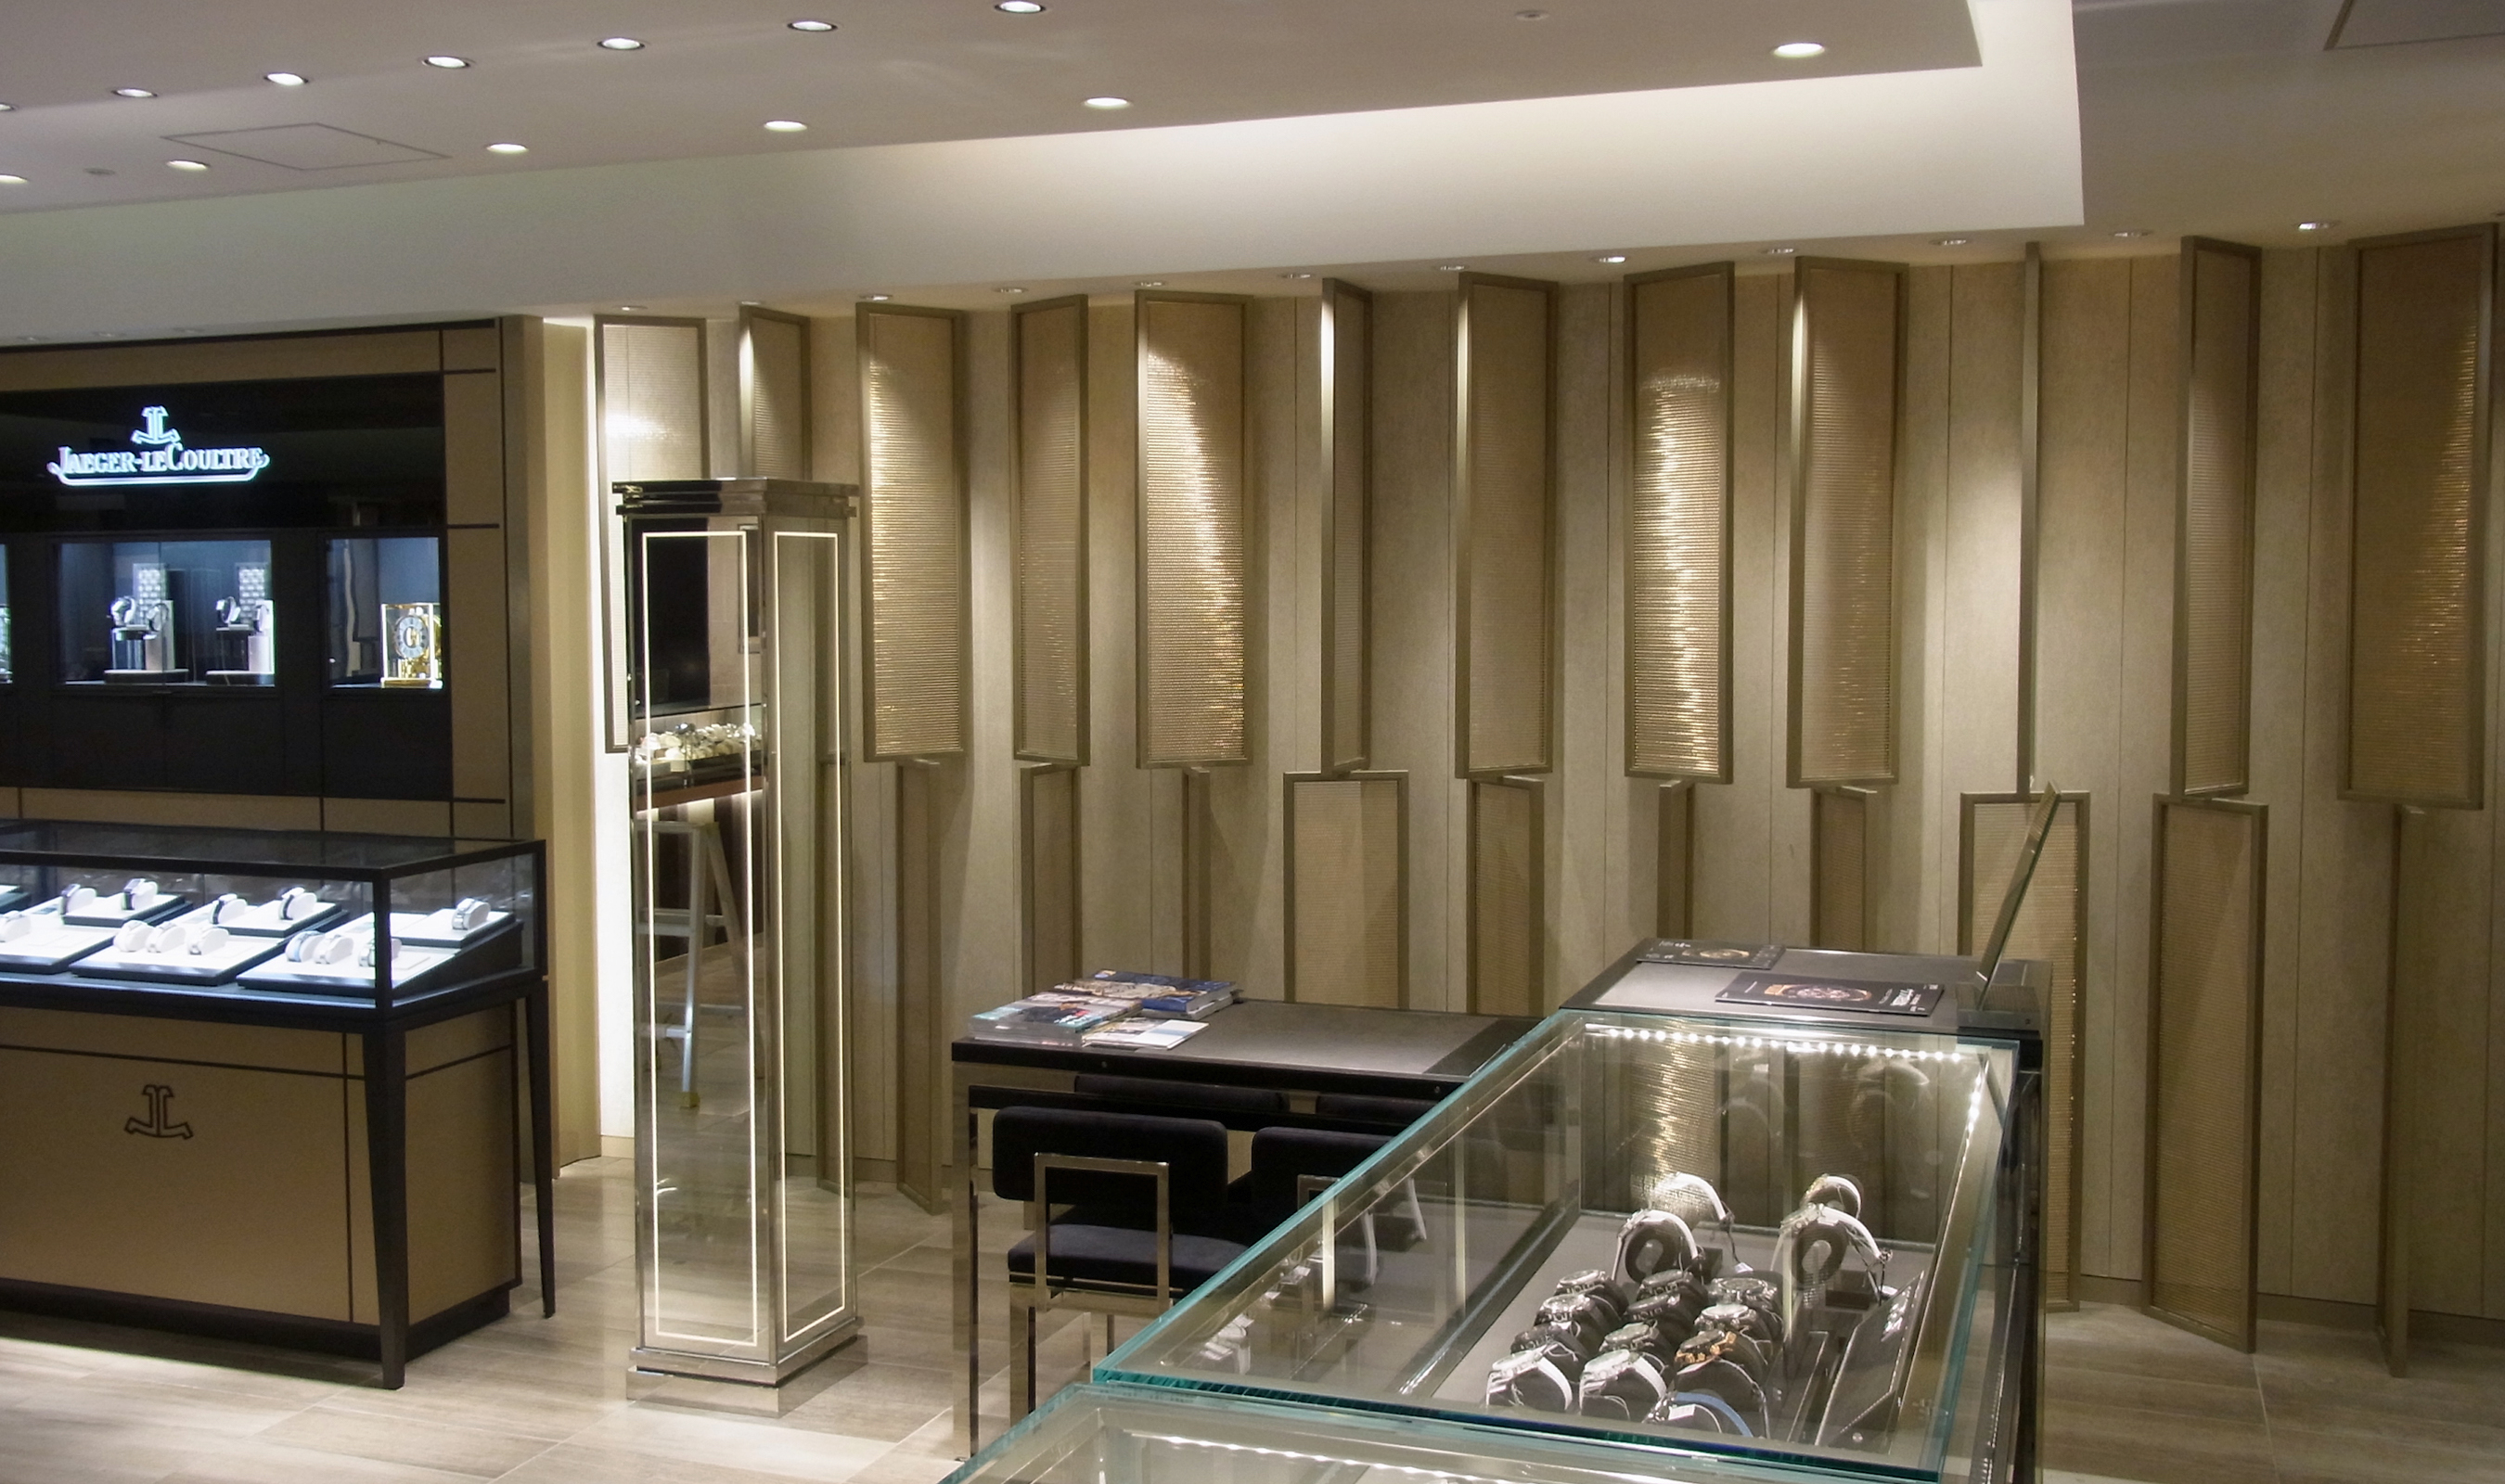 Light cascading from above highlights the Banker Wire mesh used in this retail space.